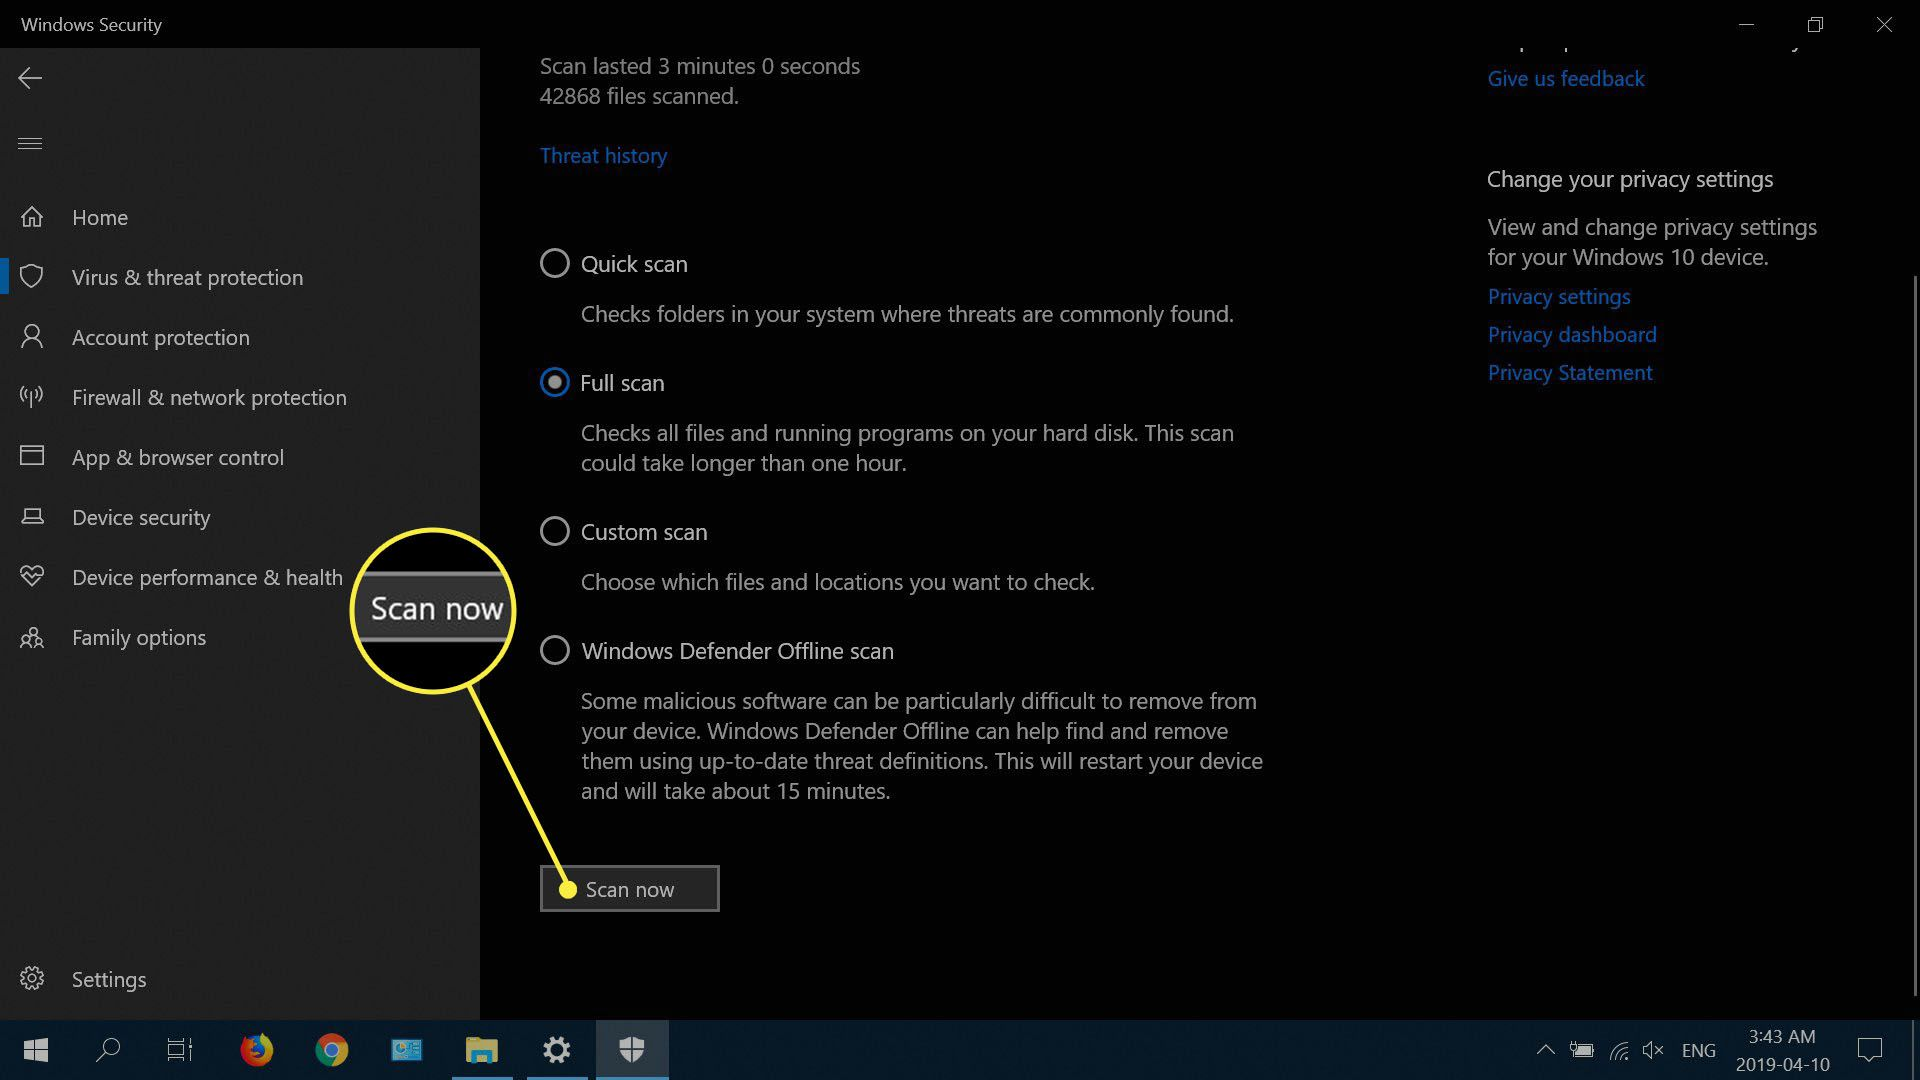 Select one of the four scanning options (Quick scan, Full scan, Custom scan, or Windows Defender Offline scan), then select Scan now.